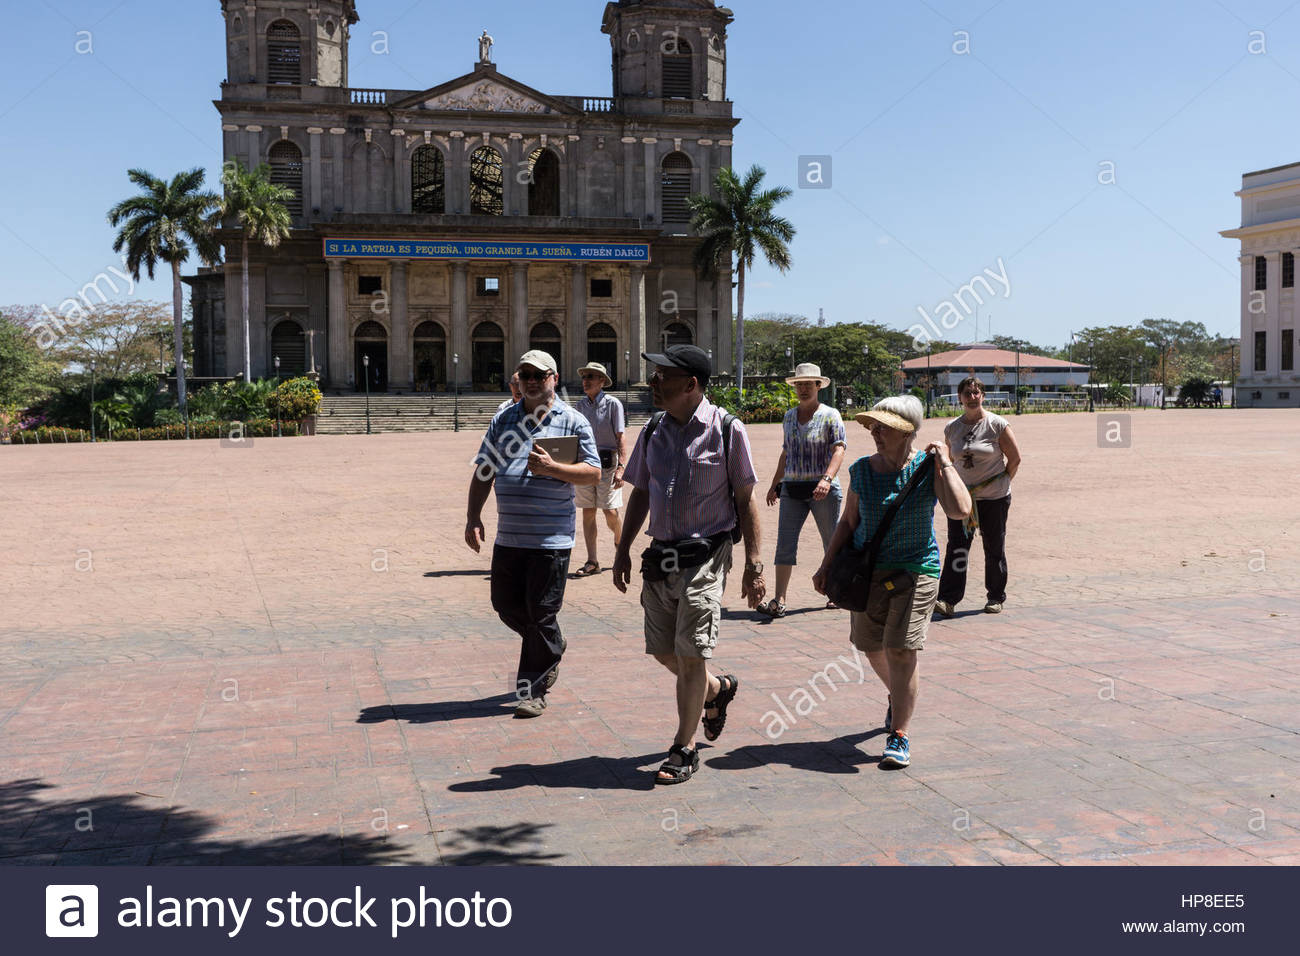 Tourists at the Plaza de la Revolución in Managua, Nicaragua Stock Photo